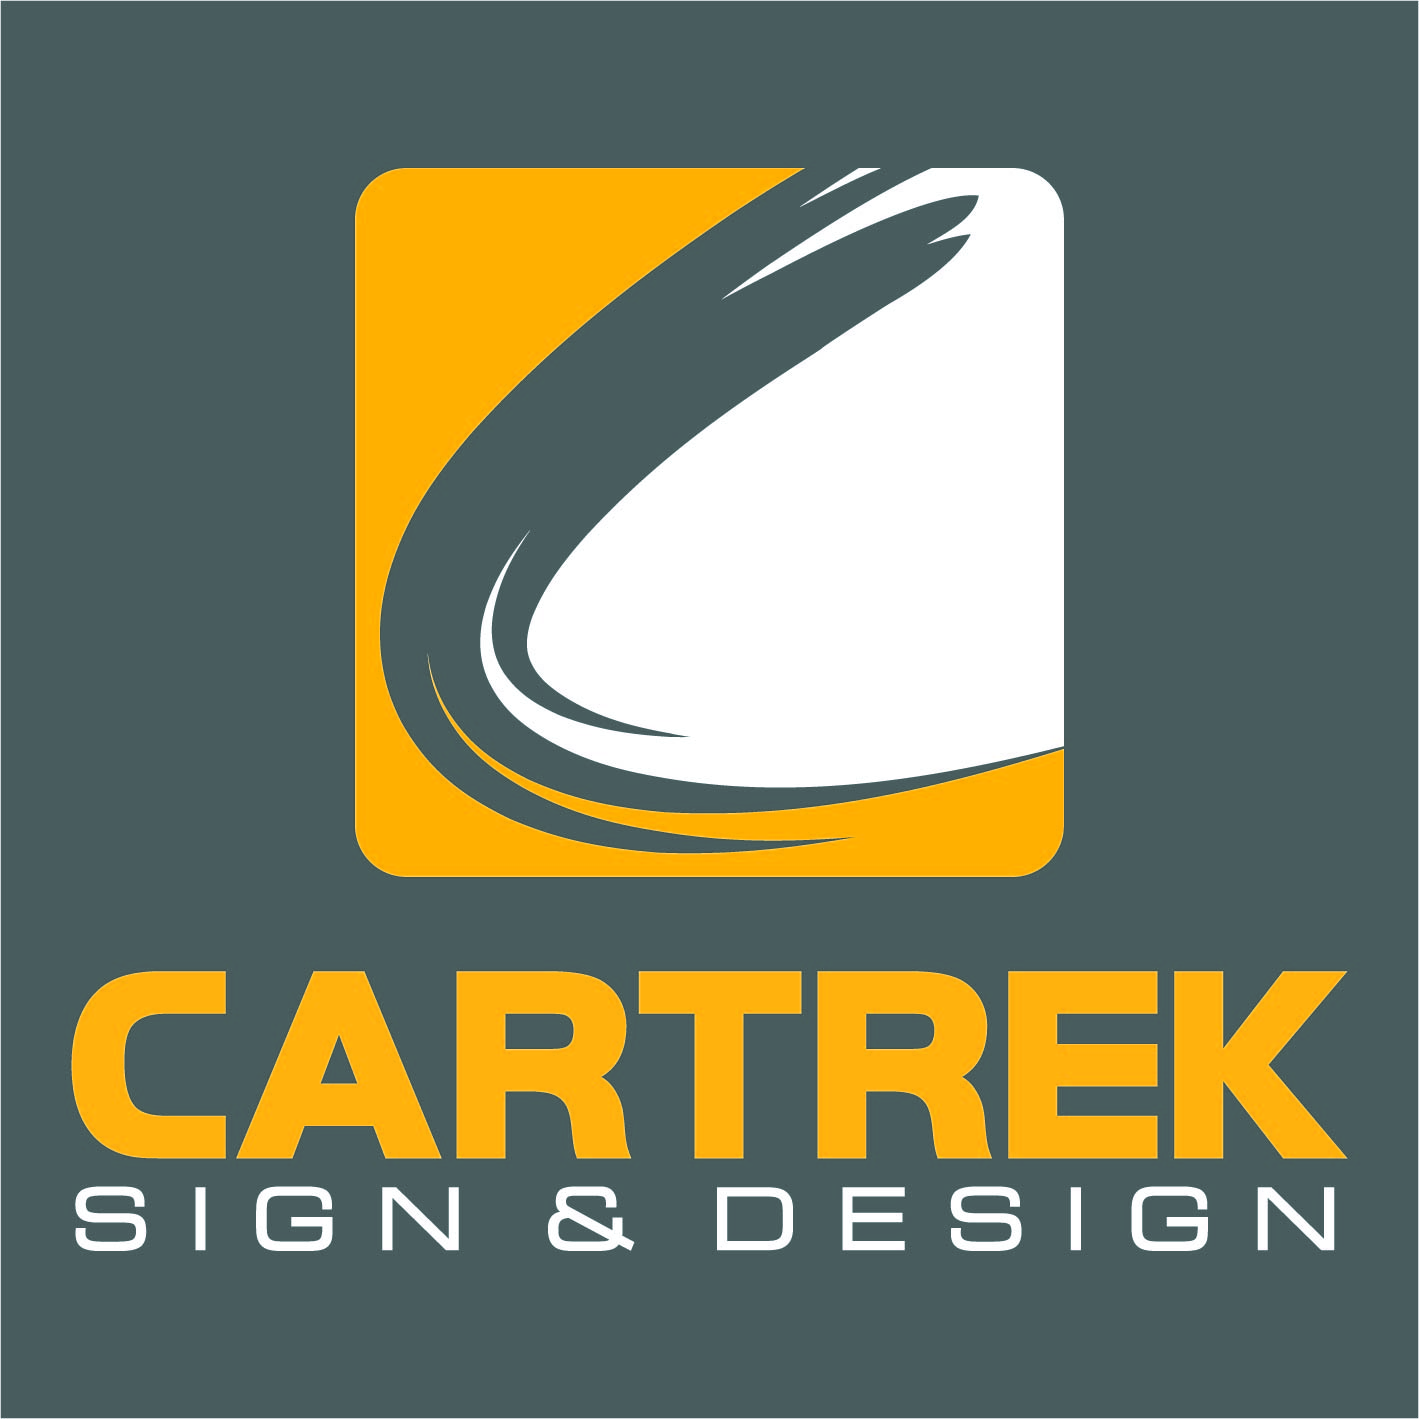 Cartrek Sign & Design